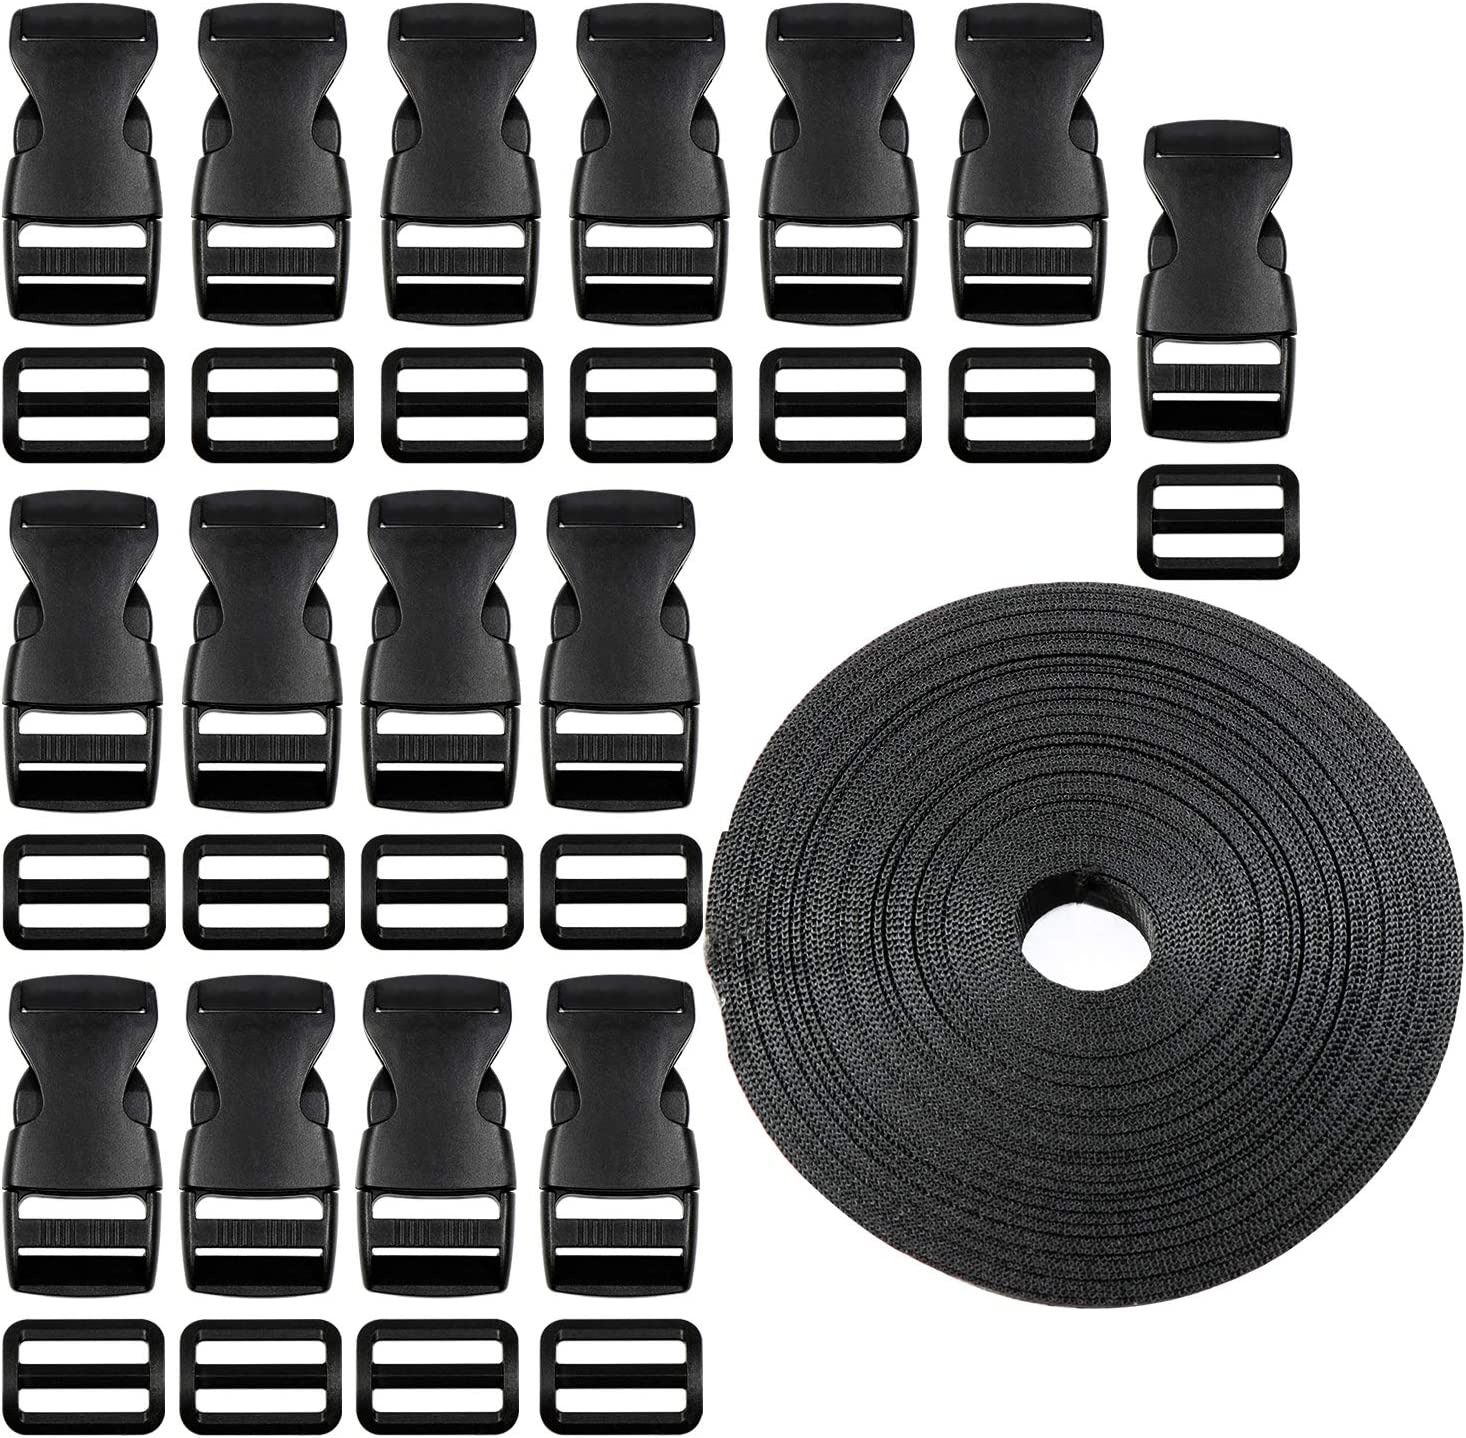 Plastic Buckle Kit with 10 Pack Side Release and Black Nylon Webbing Strap 1Inch